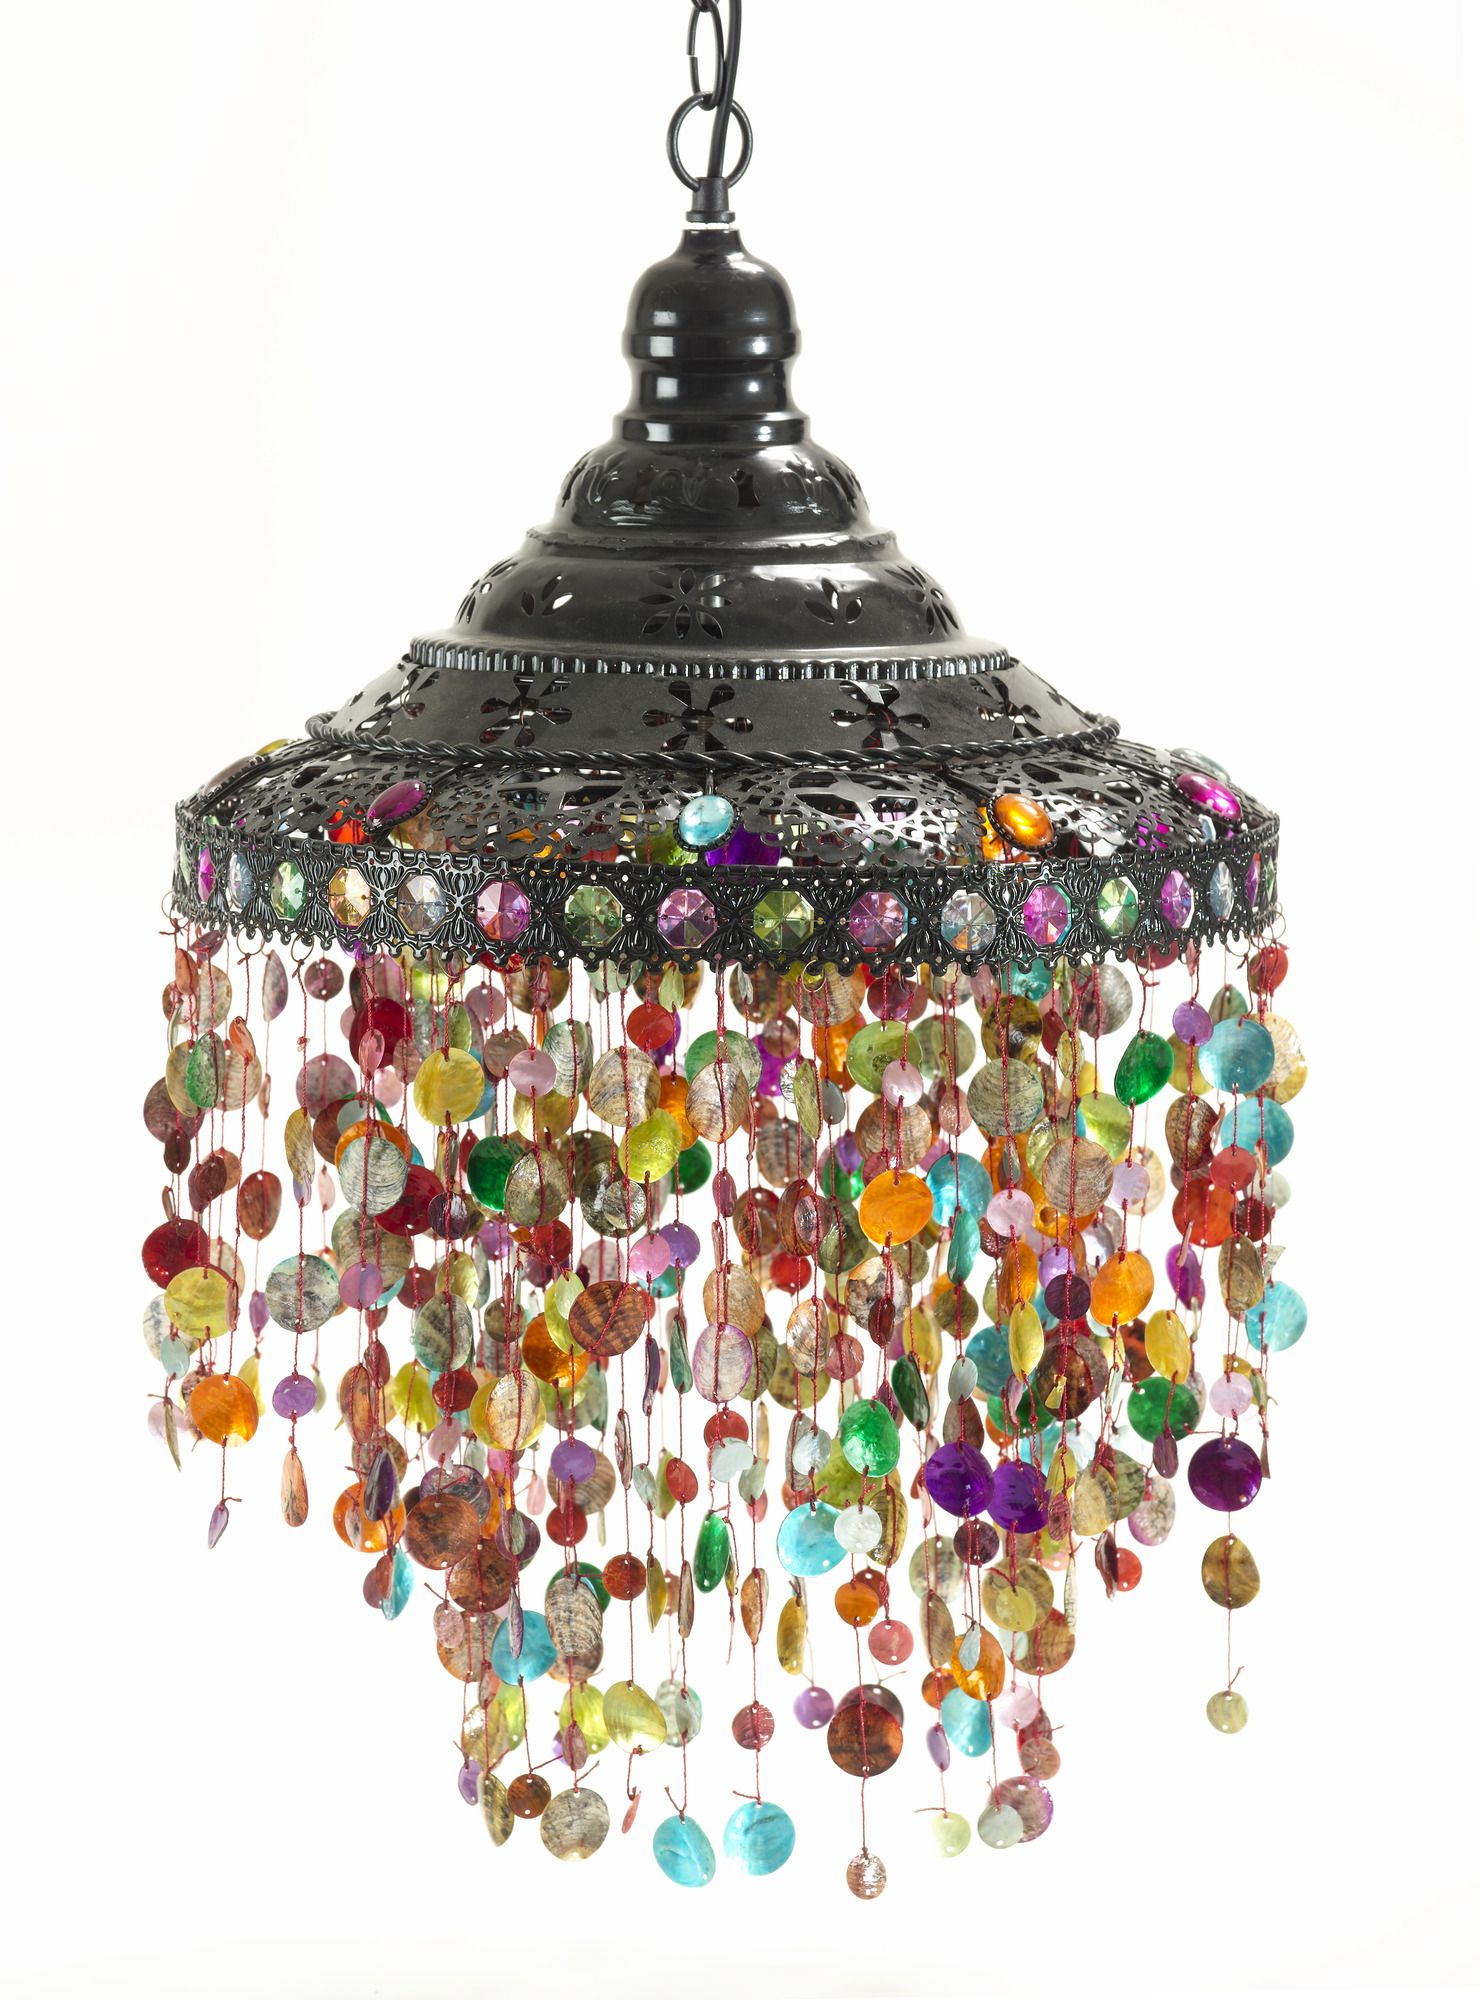 Zimmer leuchtet ideen beaded hanging lamp  op casa uno   home love  pinterest